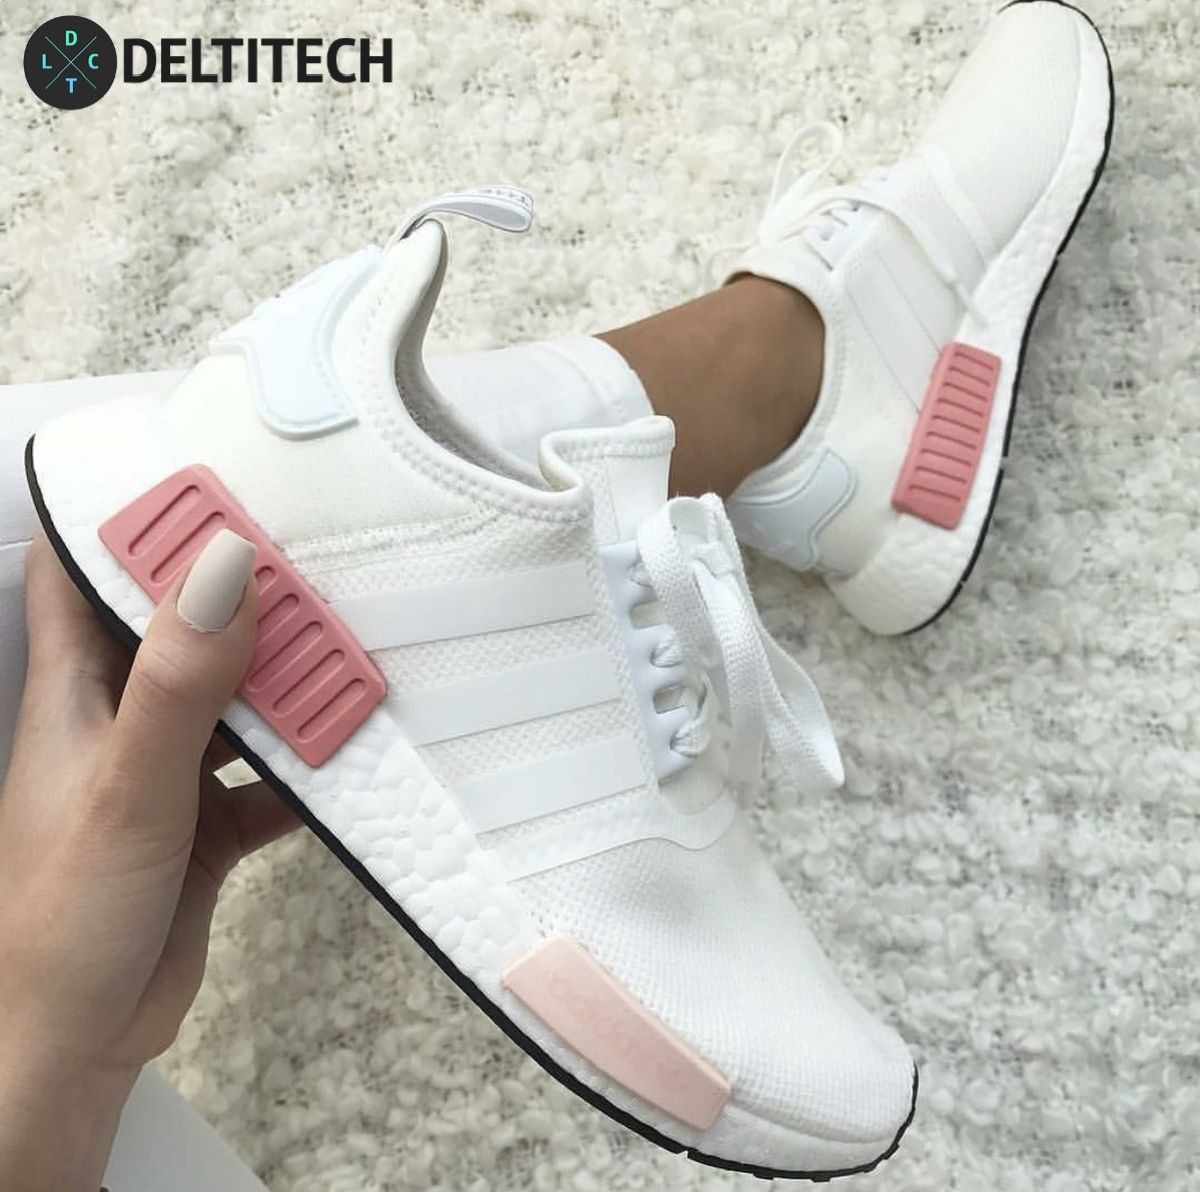 uk availability 7a336 2d5a9 Adidas NMD R1 - Pink White Perfect For Your Girls Go See The Full  Collection On Our Site   -  DeltitechBrands.com  -  adidas  nmd  nmds  nmdr1